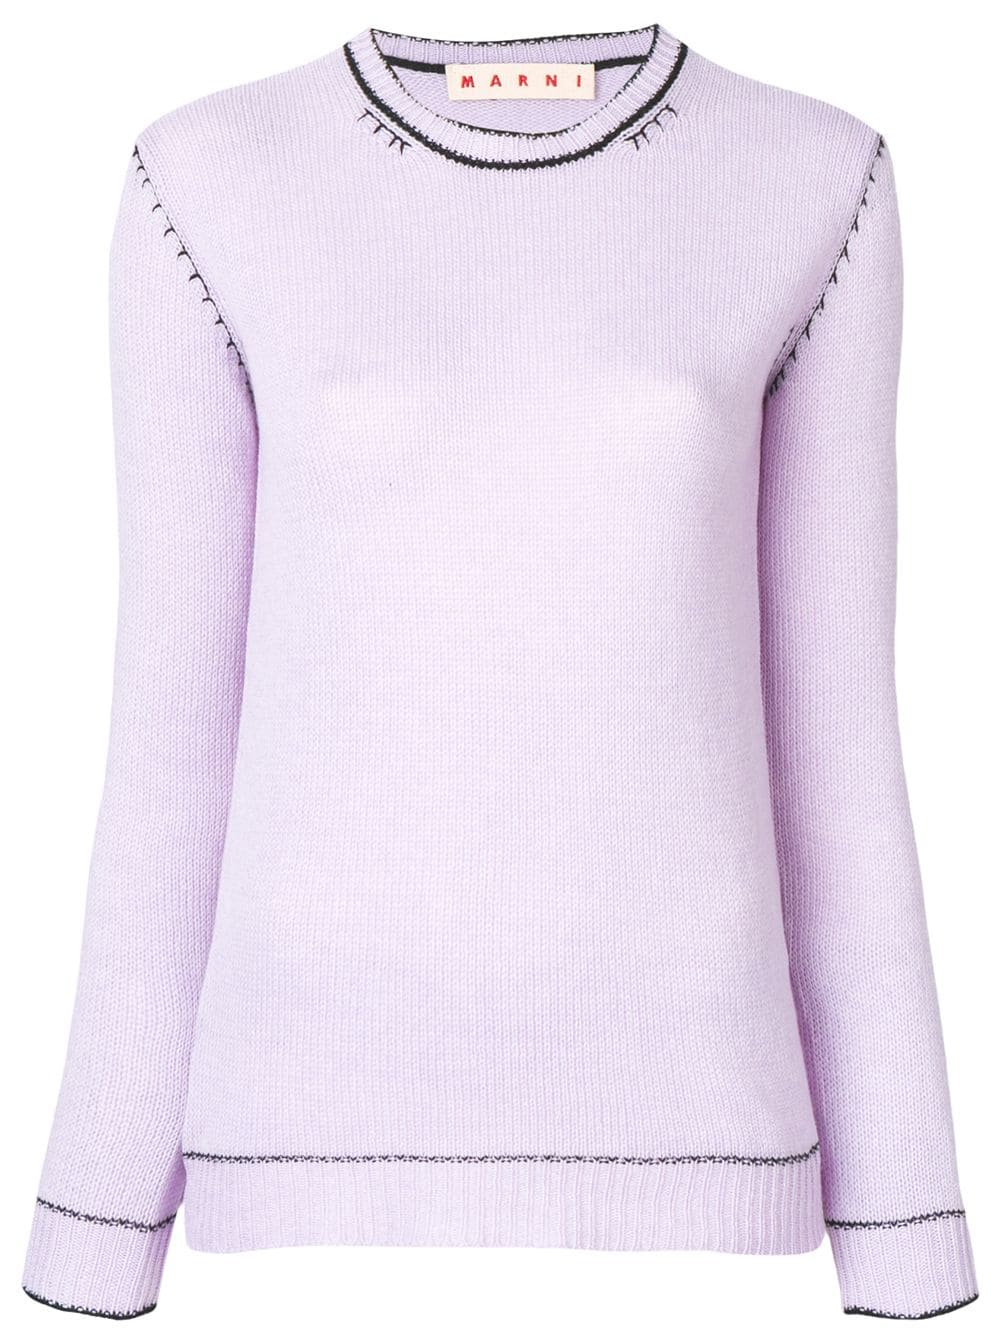 a140320d004340 Marni slim-fit knitted cashmere sweater - Purple, 2019   Products ...